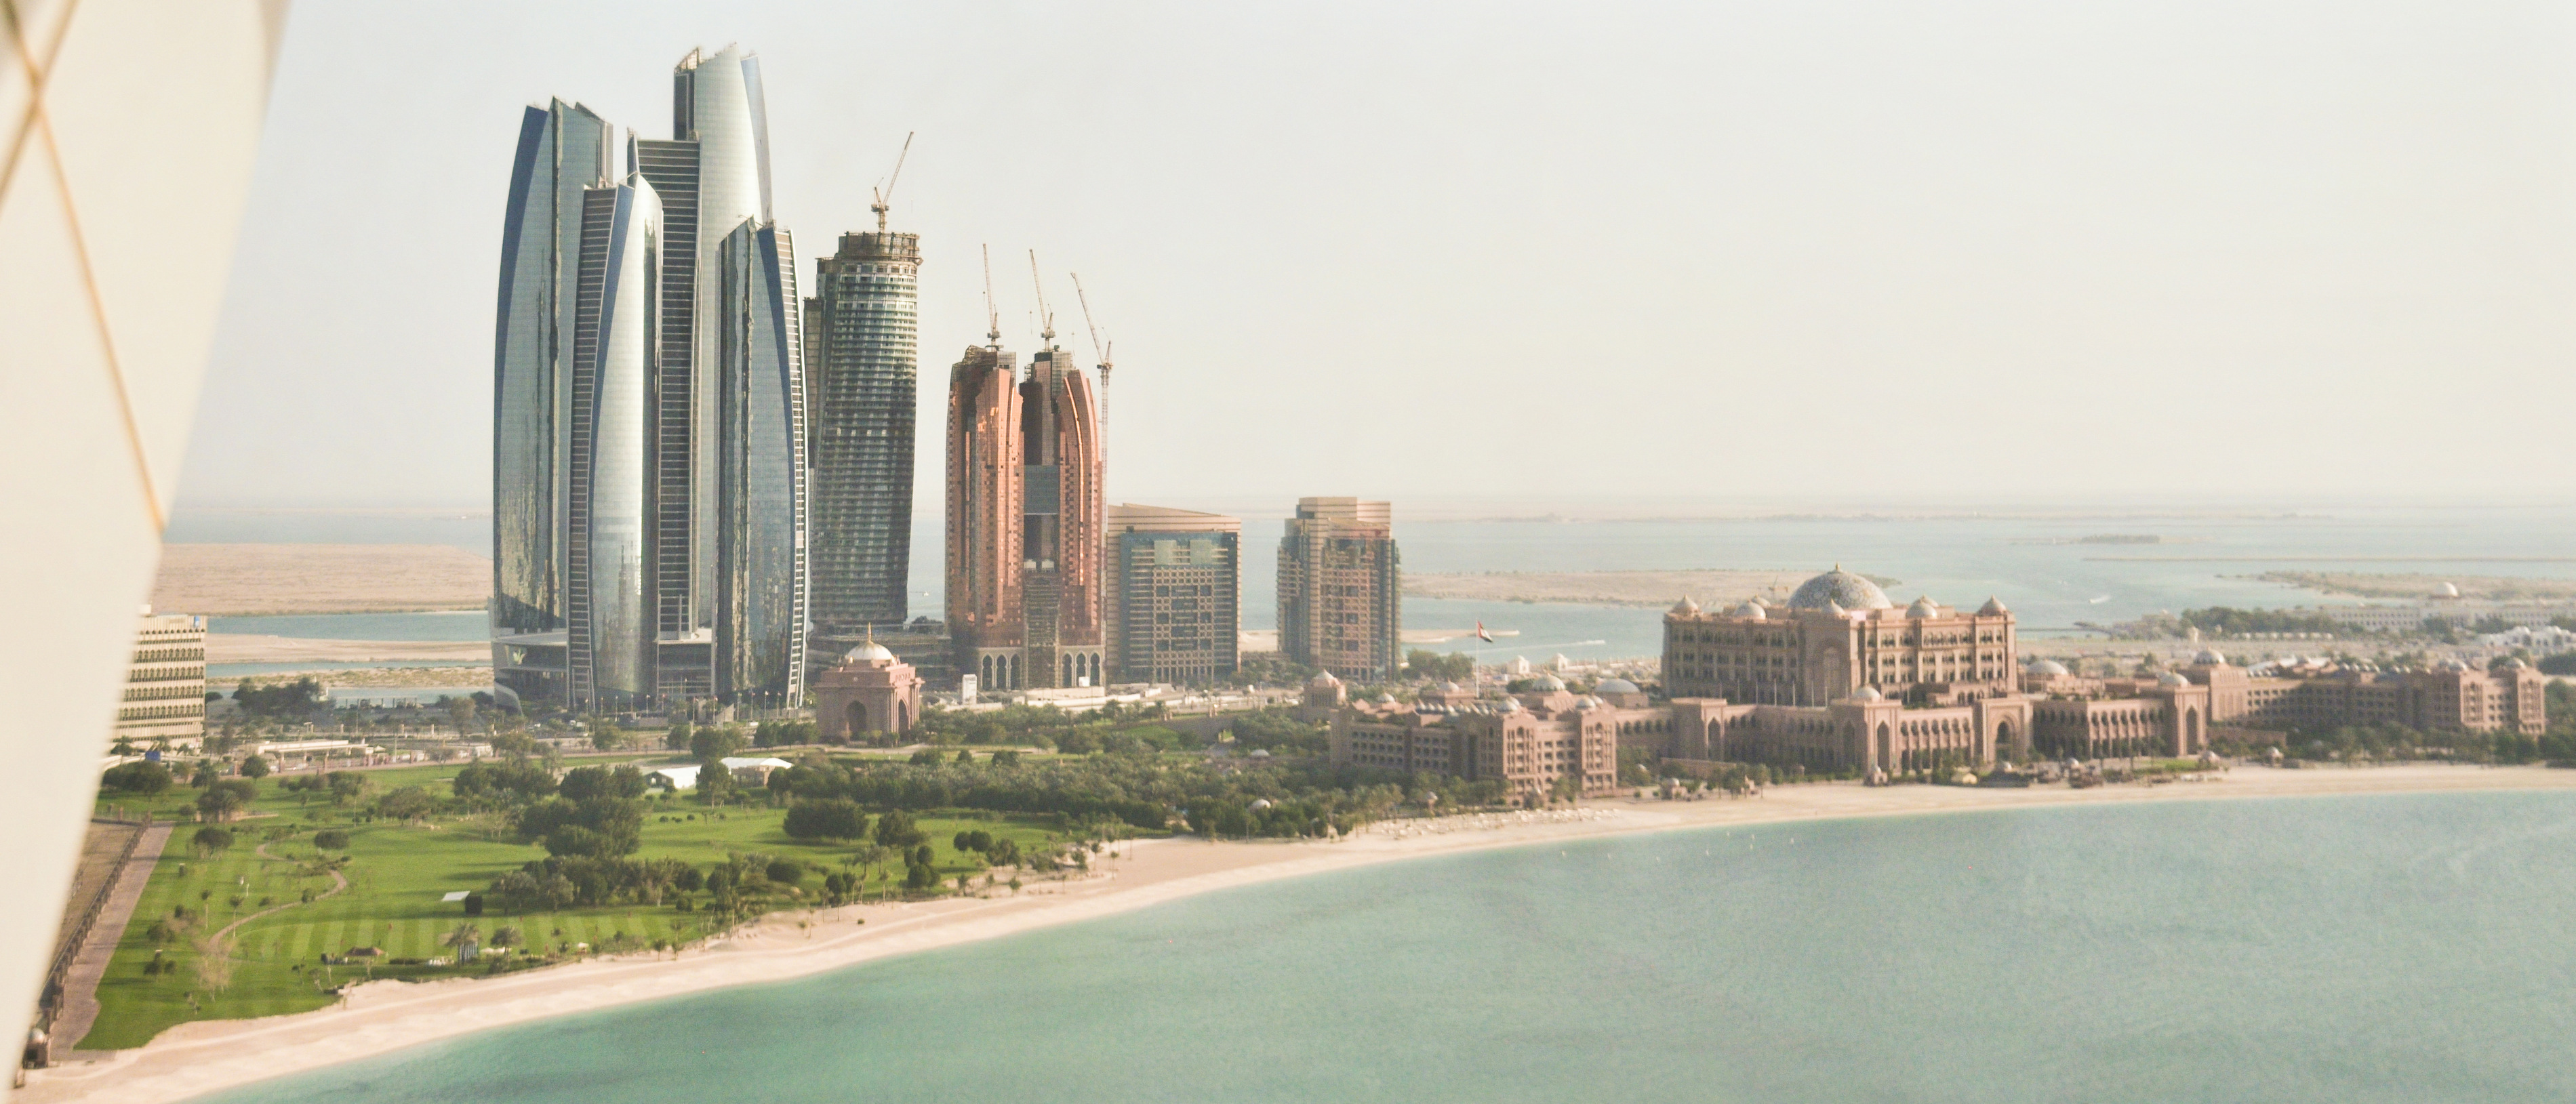 - corniche-towers-emirates-palace-abu-dhabi-high-resolution-hd-fotos-photos-pictures-blog-alf-dahl-running-vae-uae